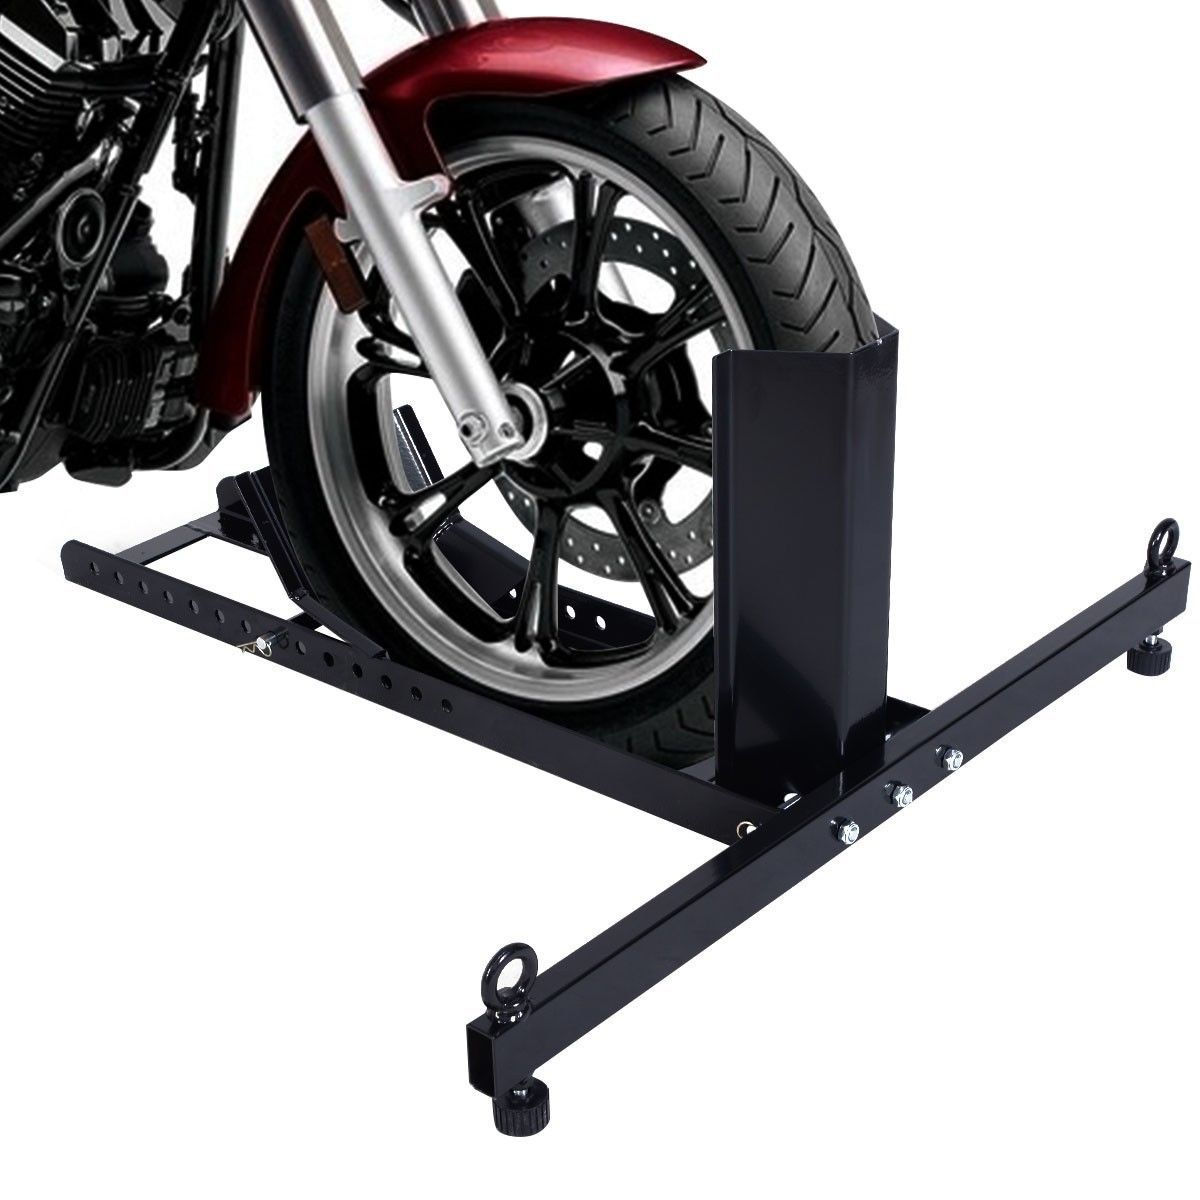 Details About Motorcycle Stand Wheel Chock Adjustable Upright 1800lb Capacity Motorcycle Wheels Motorcycle Bike